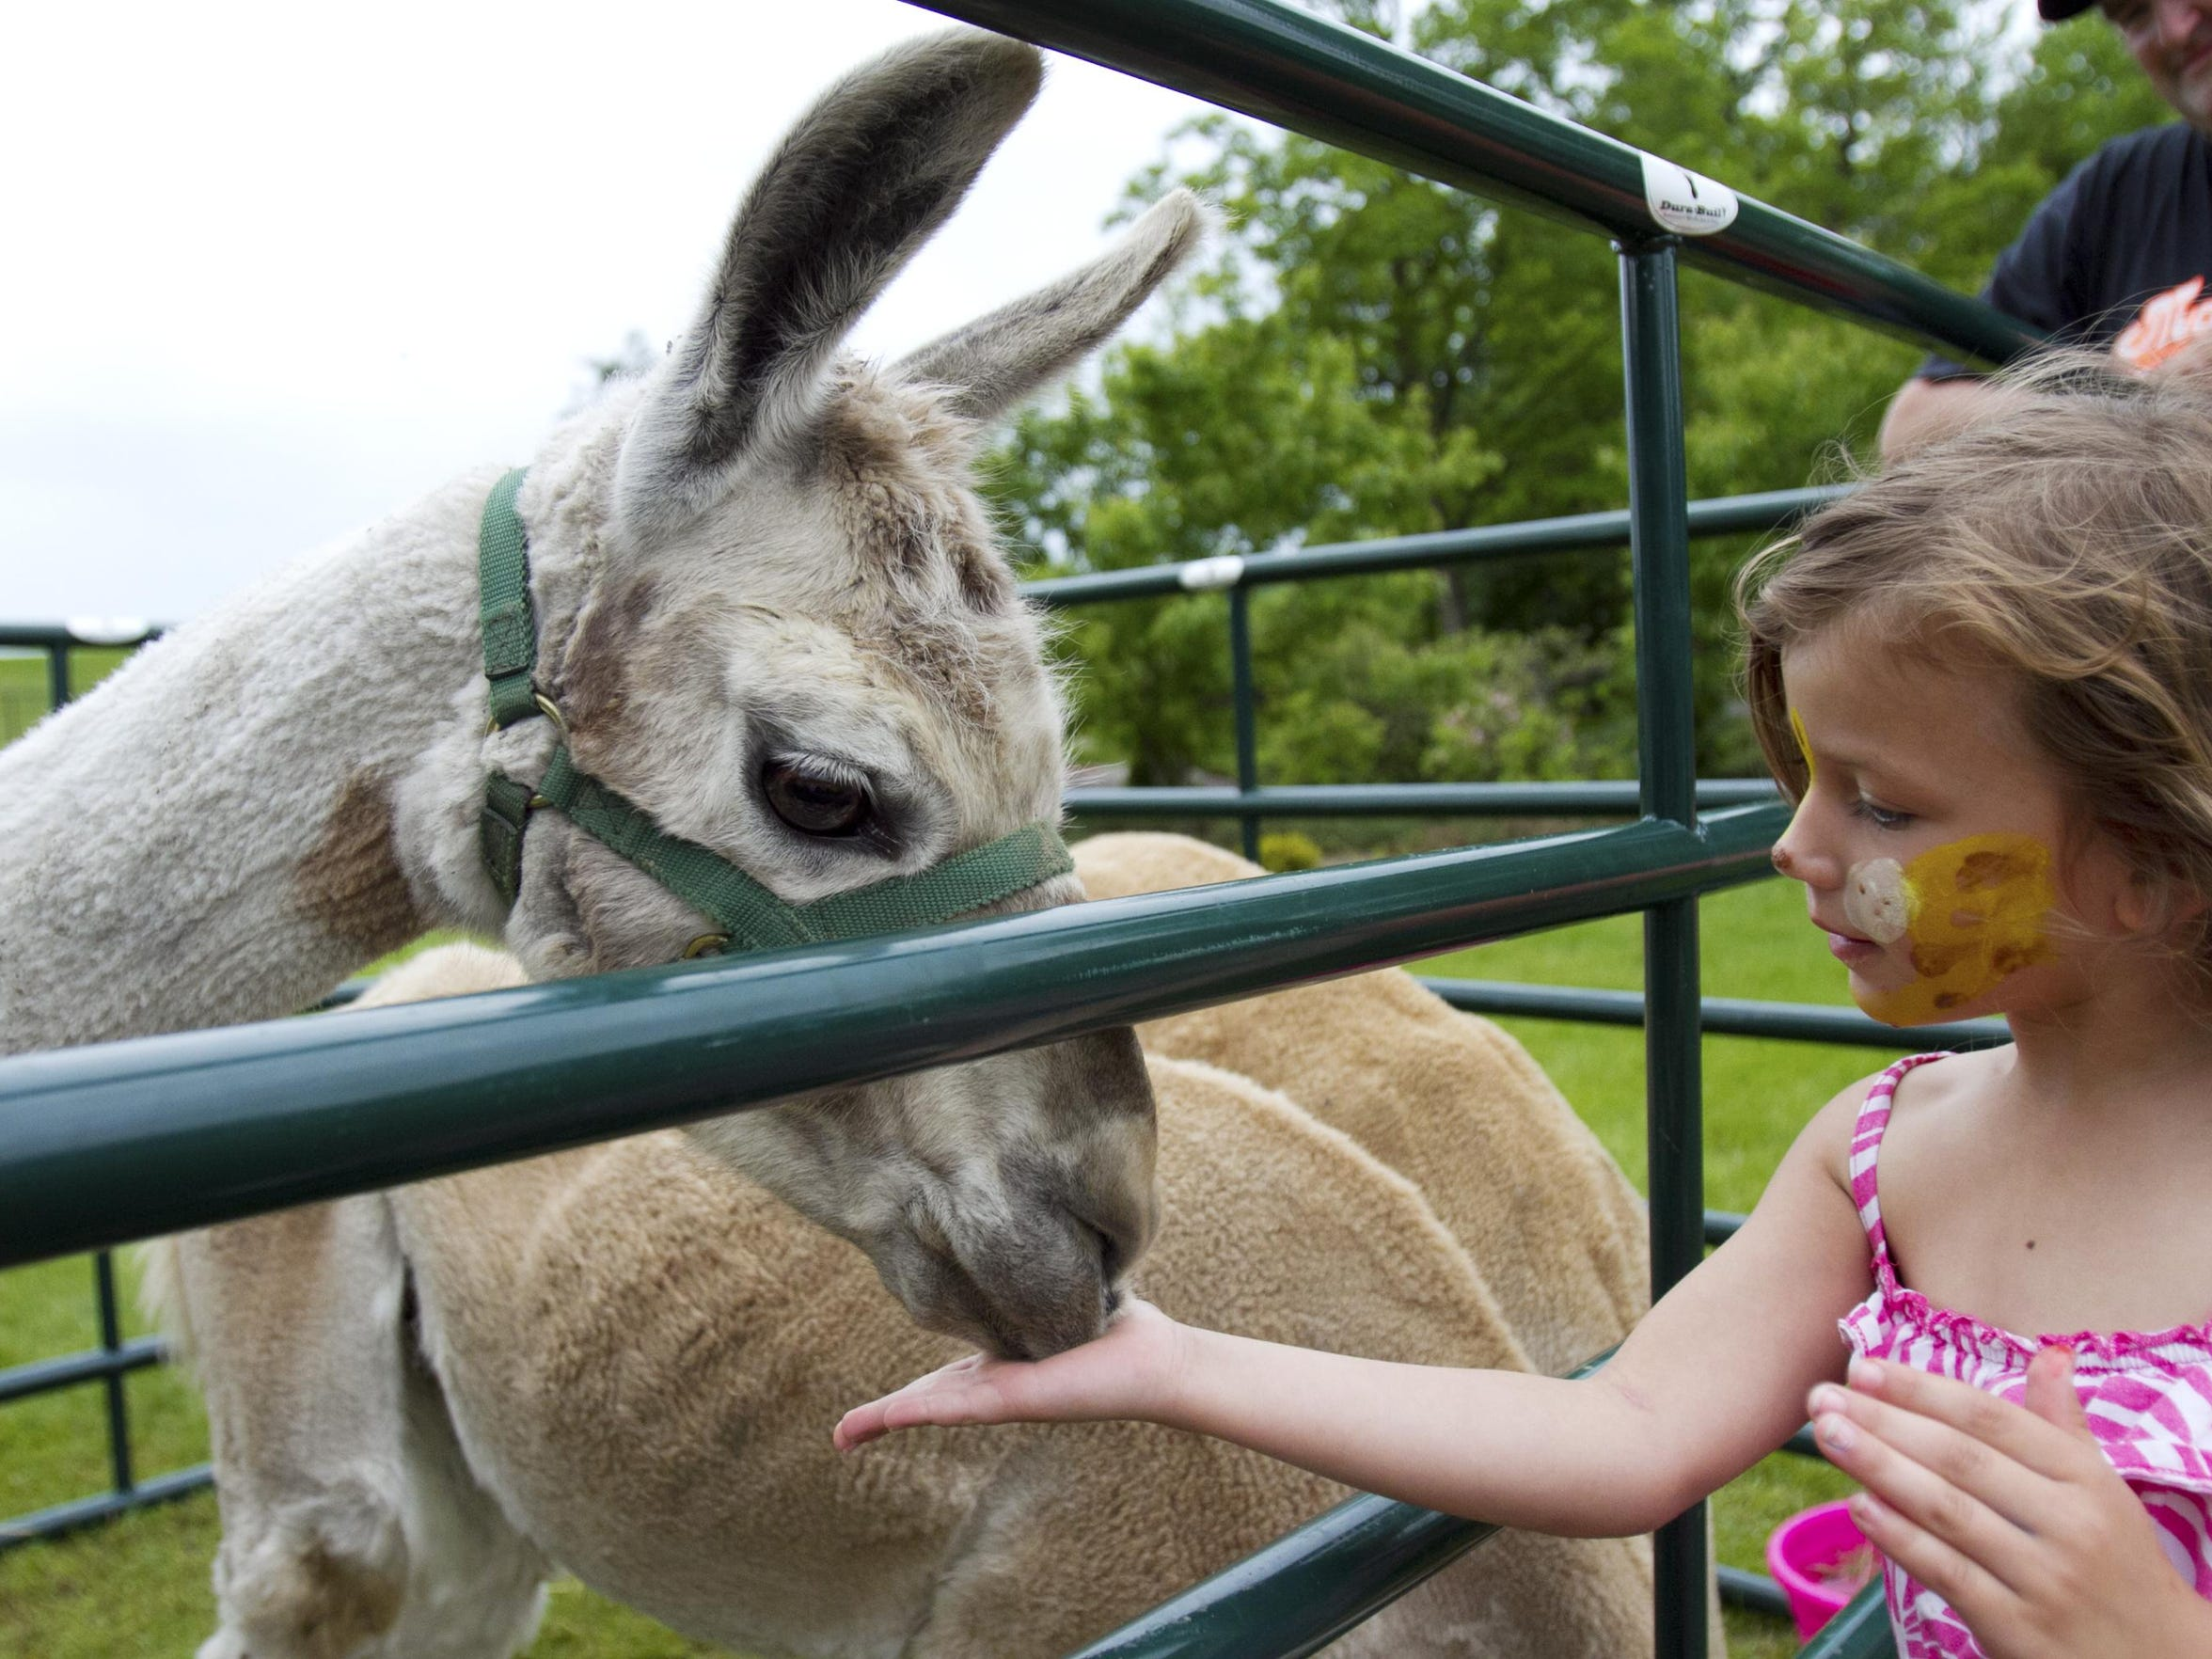 Zoofest offers a variety of family activities including a petting zoo, bounce house, hay rides, clowns, games, concessions and more.